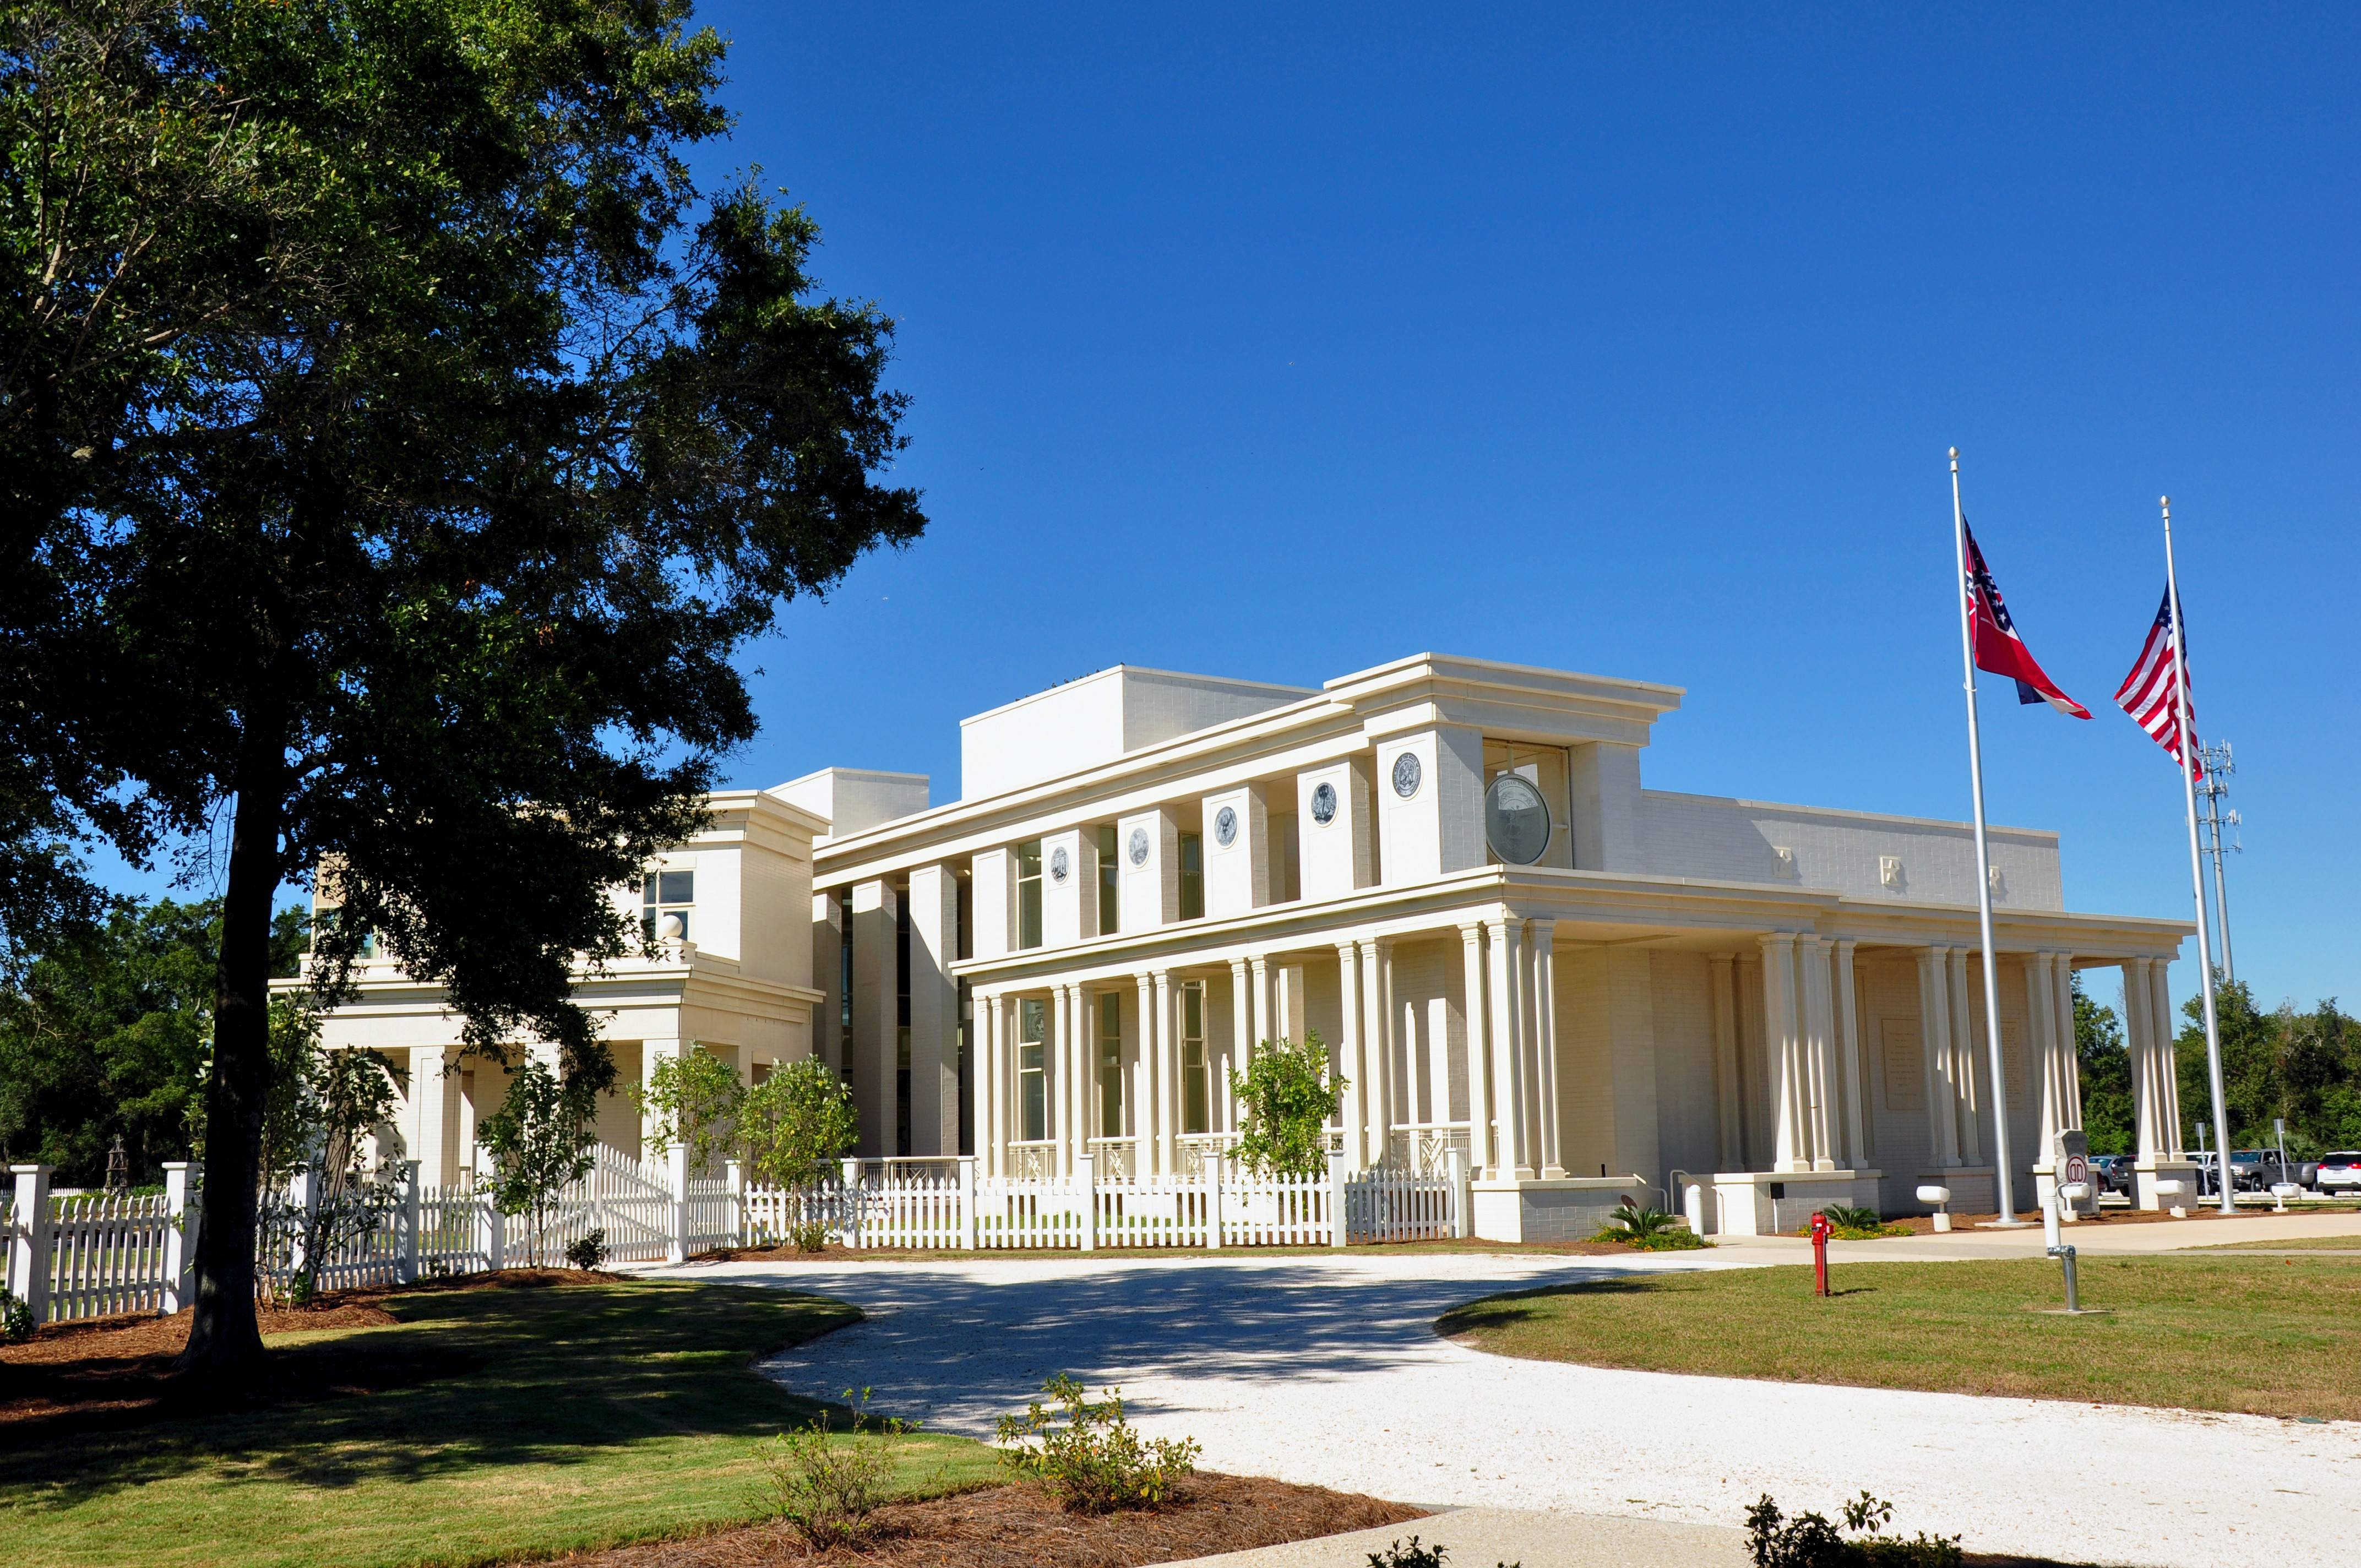 The Jefferson Davis Presidential Library houses the archives of the president of the Confederacy.